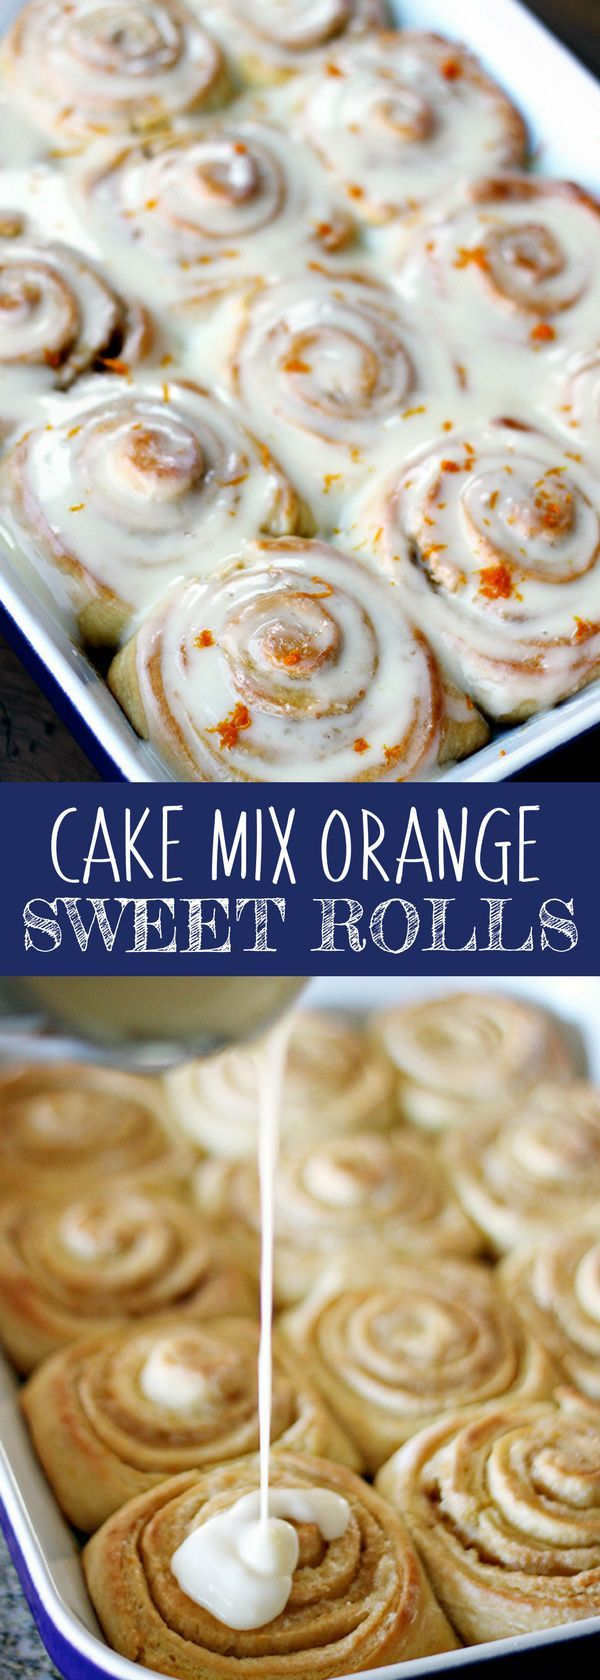 Looking for easy dessert recipes? These Cake Mix Orange Sweet Rolls are tender, sweet rolls with fresh orange zest in the dough smell absolutely heavenly baking. Drench them in my Orange Cream Cheese Glaze for an amazing sweet roll, perfect for breakfast or brunch. Absolutely delicious! For more easy food recipes, creative craft ideas, easy home decor and DIY projects, check us out at #no2pencil. #food #foodlover #sweettooth #recipeoftheday #recipeideas